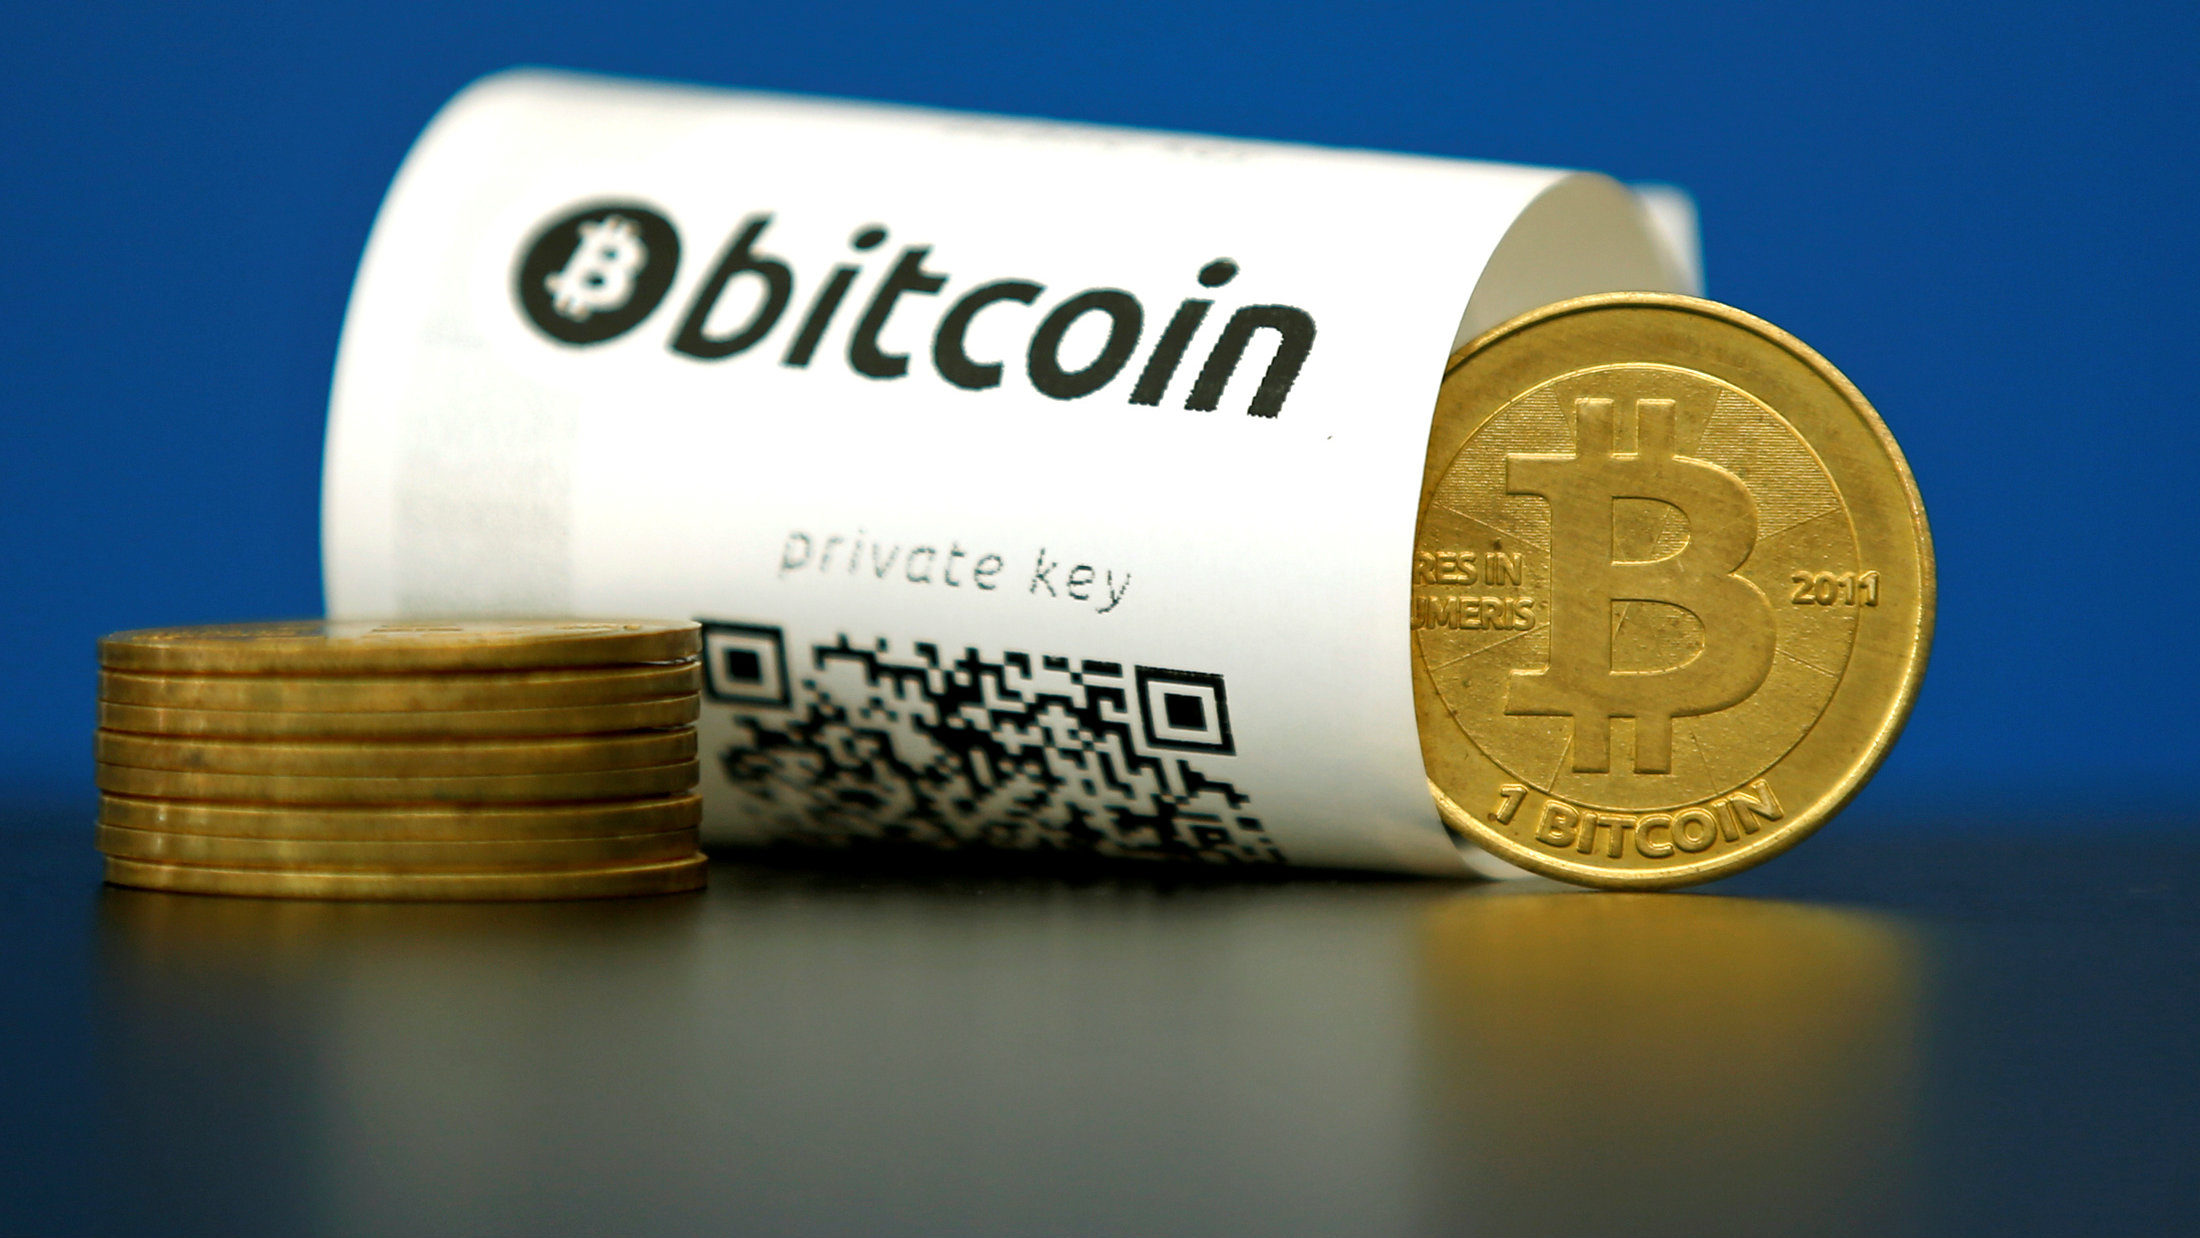 A bitcoin paper wallet with QR codes and a coin